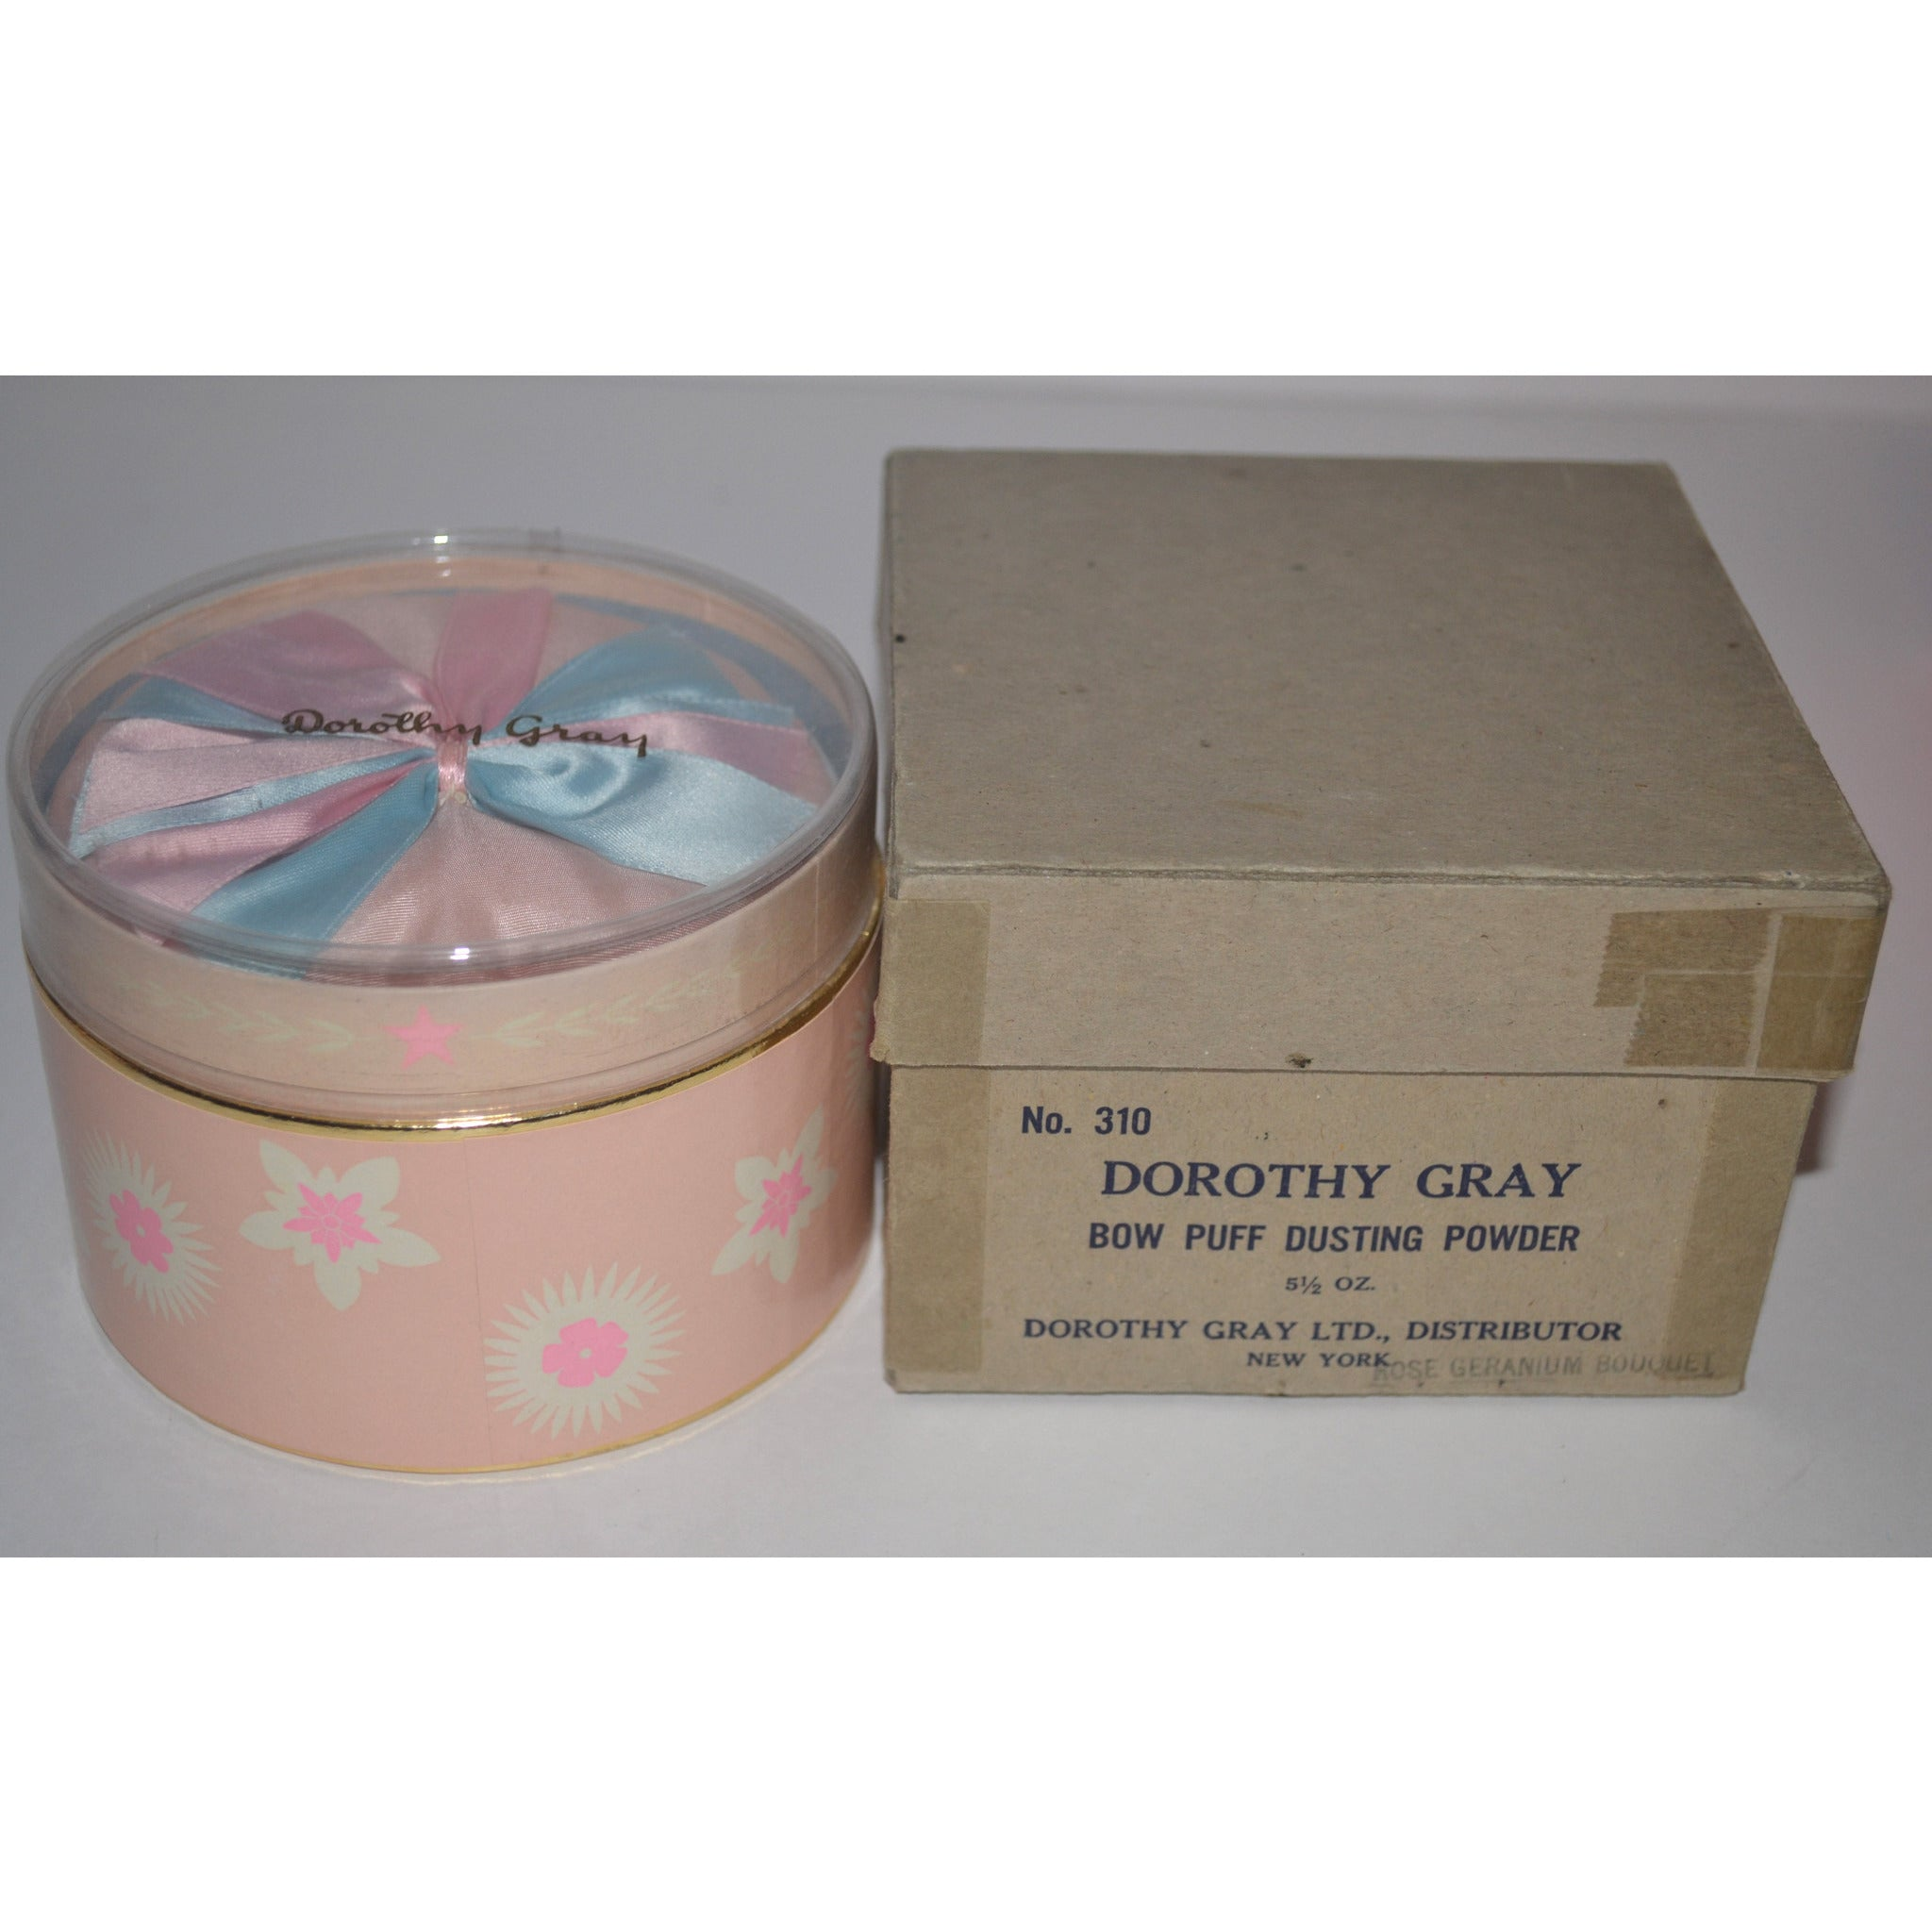 Vintage Rose Geranium Powder By Dorothy Gray